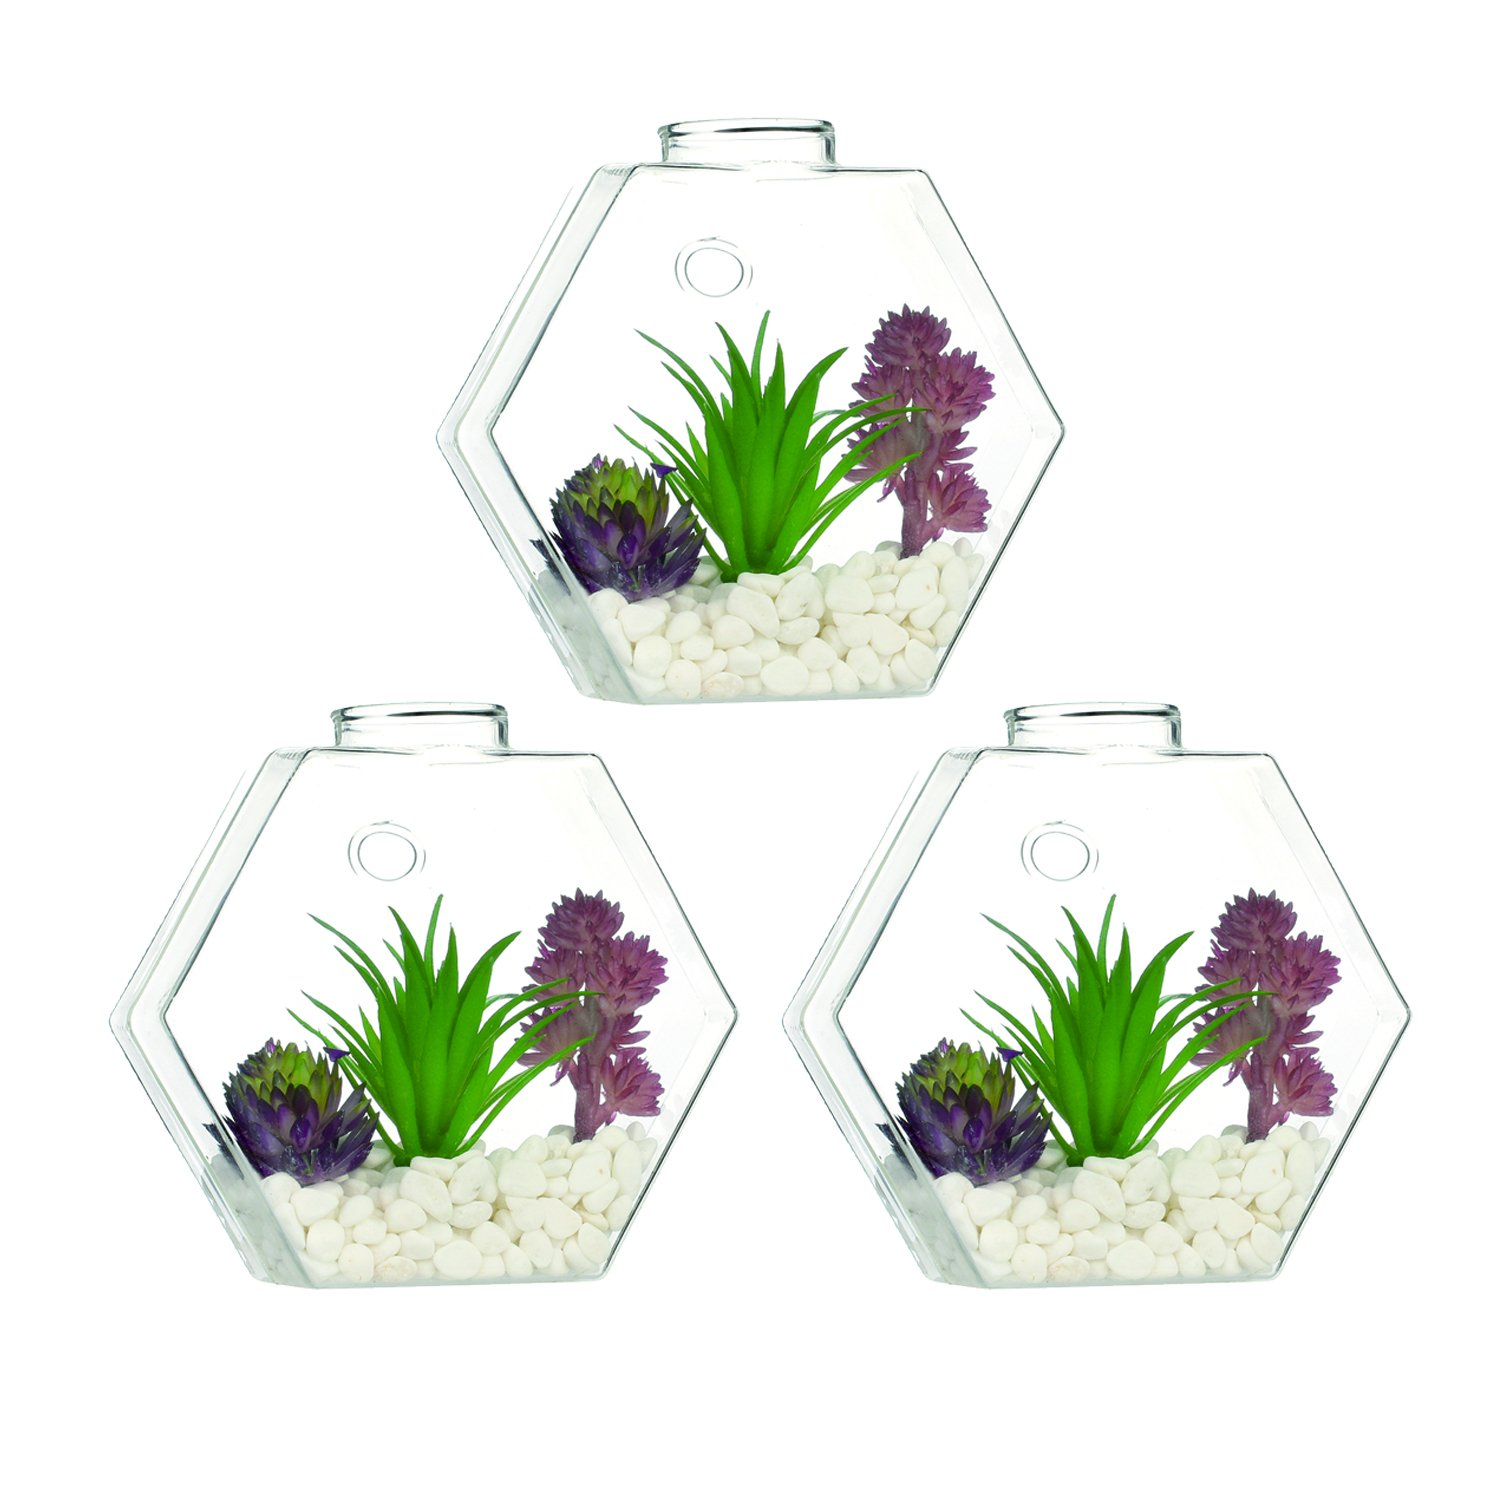 Pack of 3 Medium Glass Hexagon Wall Terrariums Succulents Plants Planters Wall Mounted Flower Vase DIY Gift for Home Decorate Living Room or Bedroom